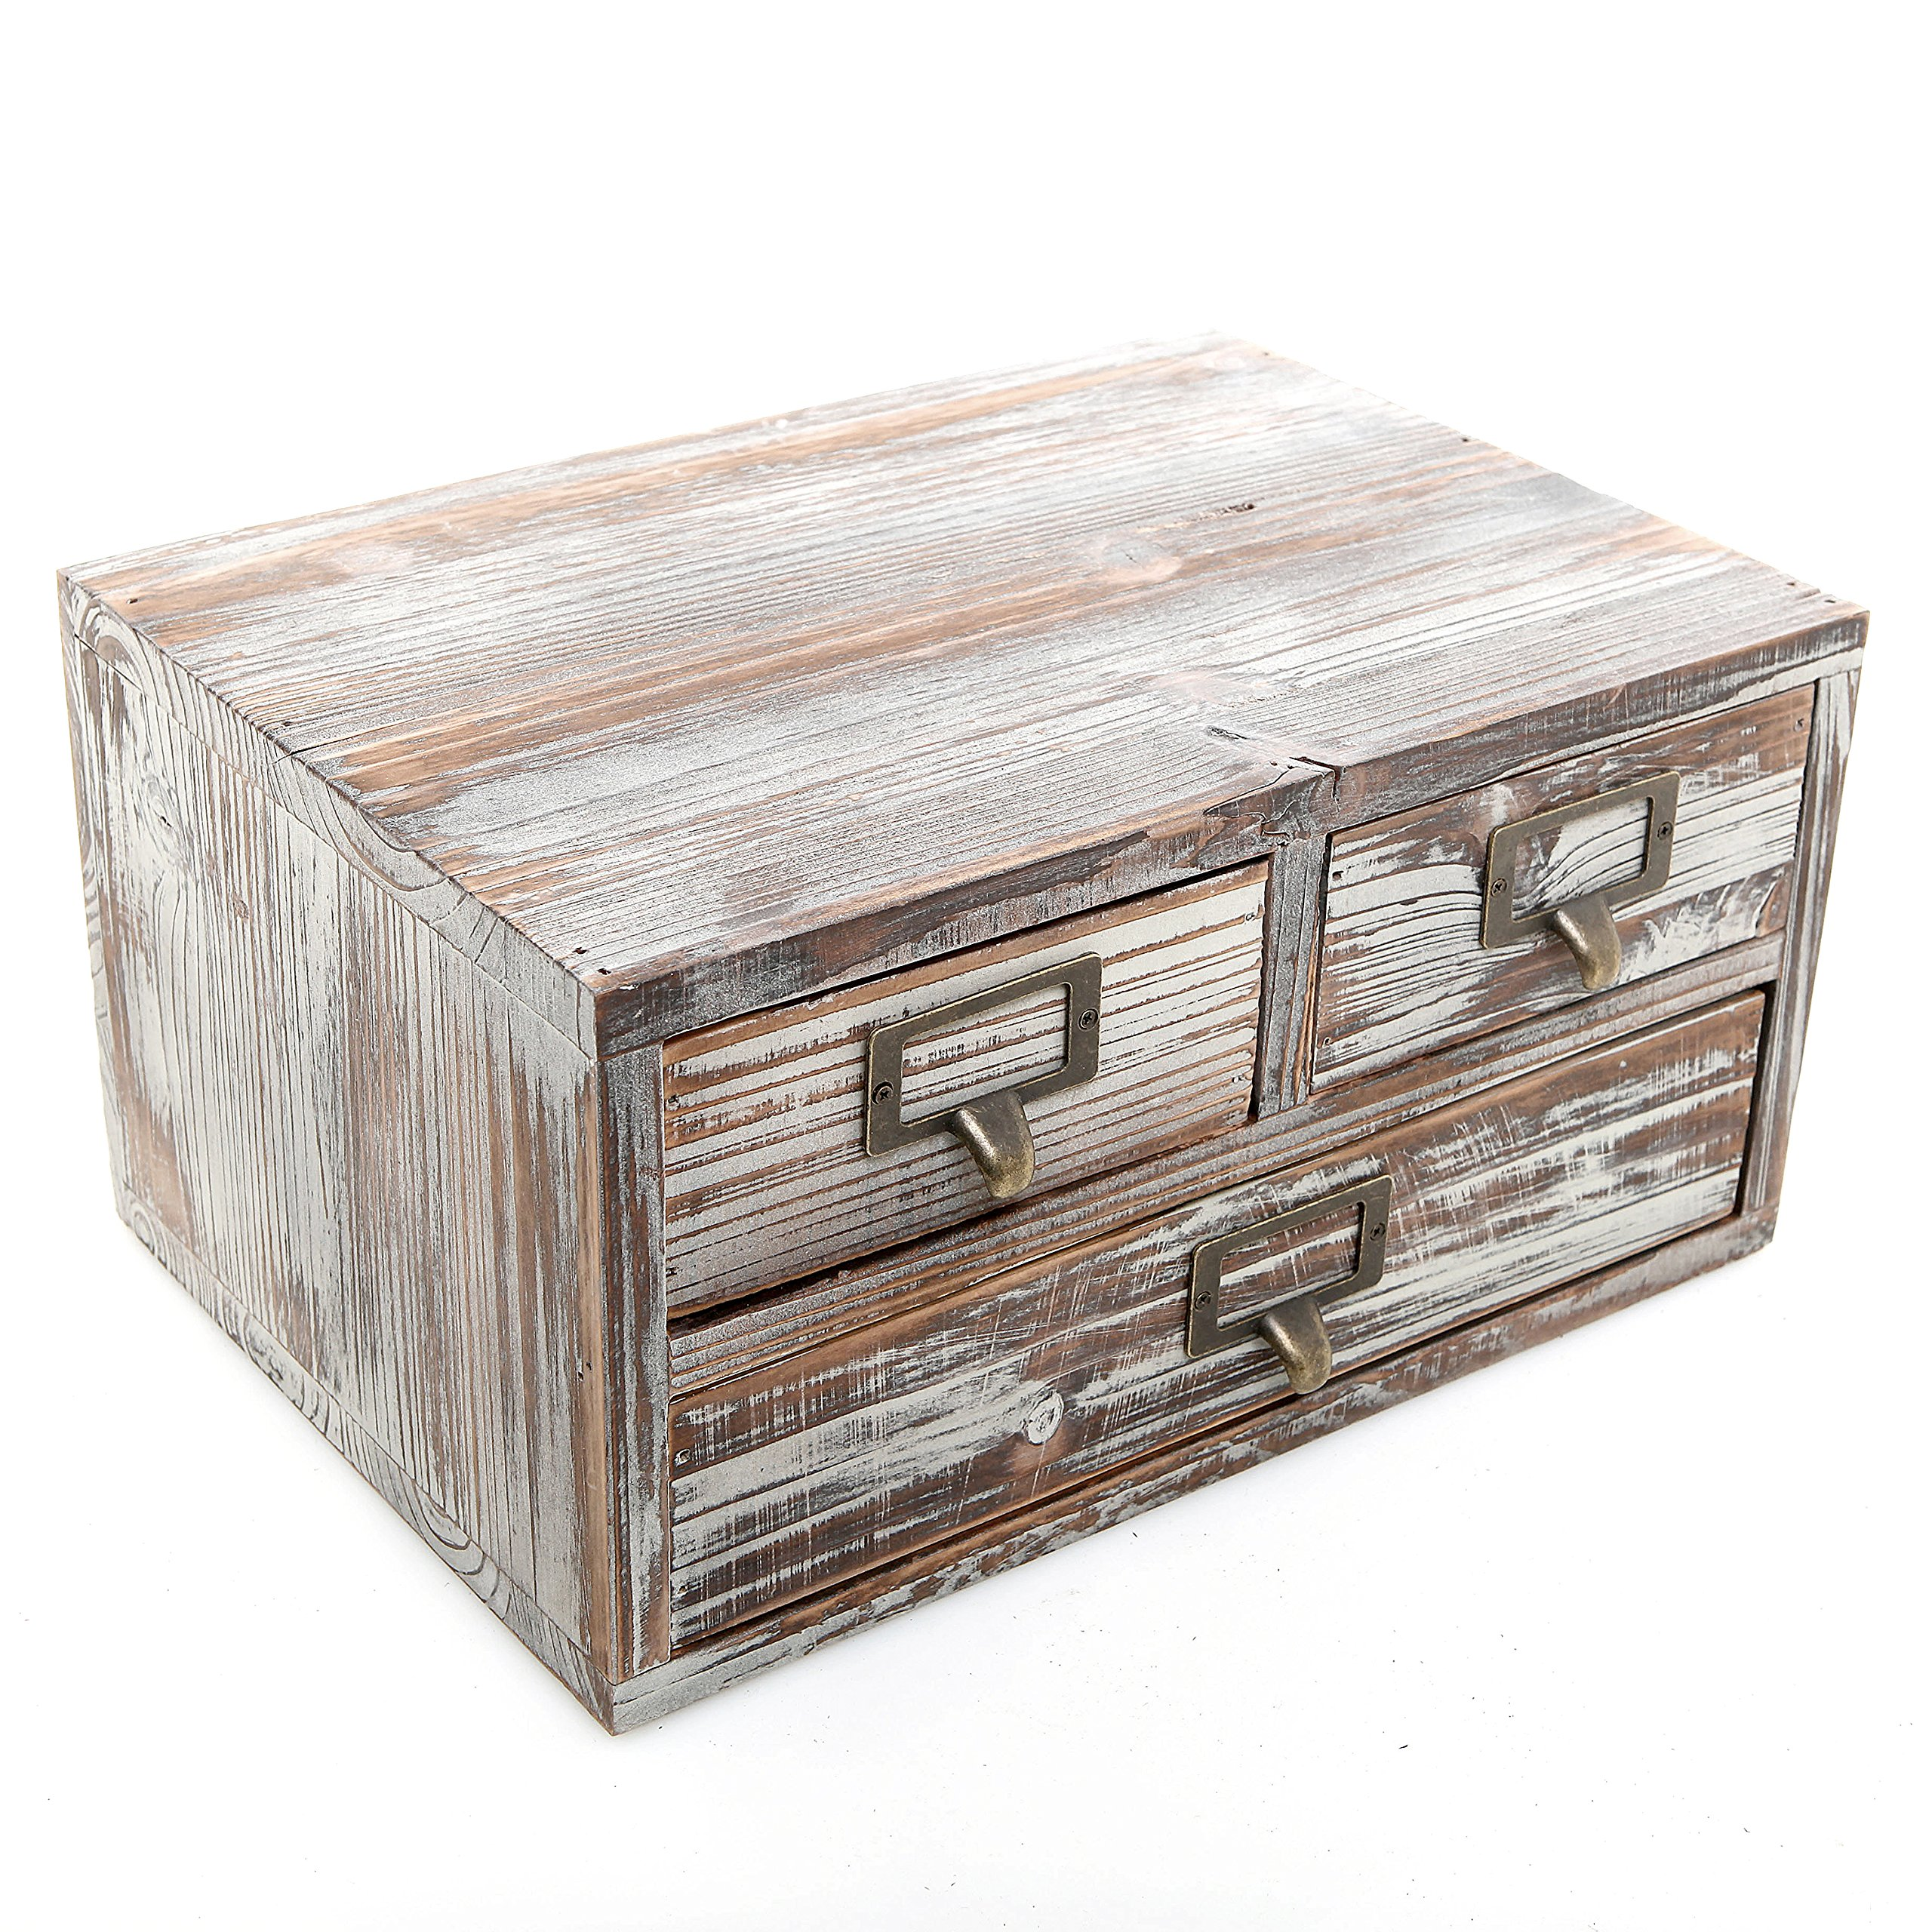 Rustic Torched Finish Wood Office Storage Cabinet / Jewelry Organizer w/ 3 Drawers, Ash Brown - MyGift